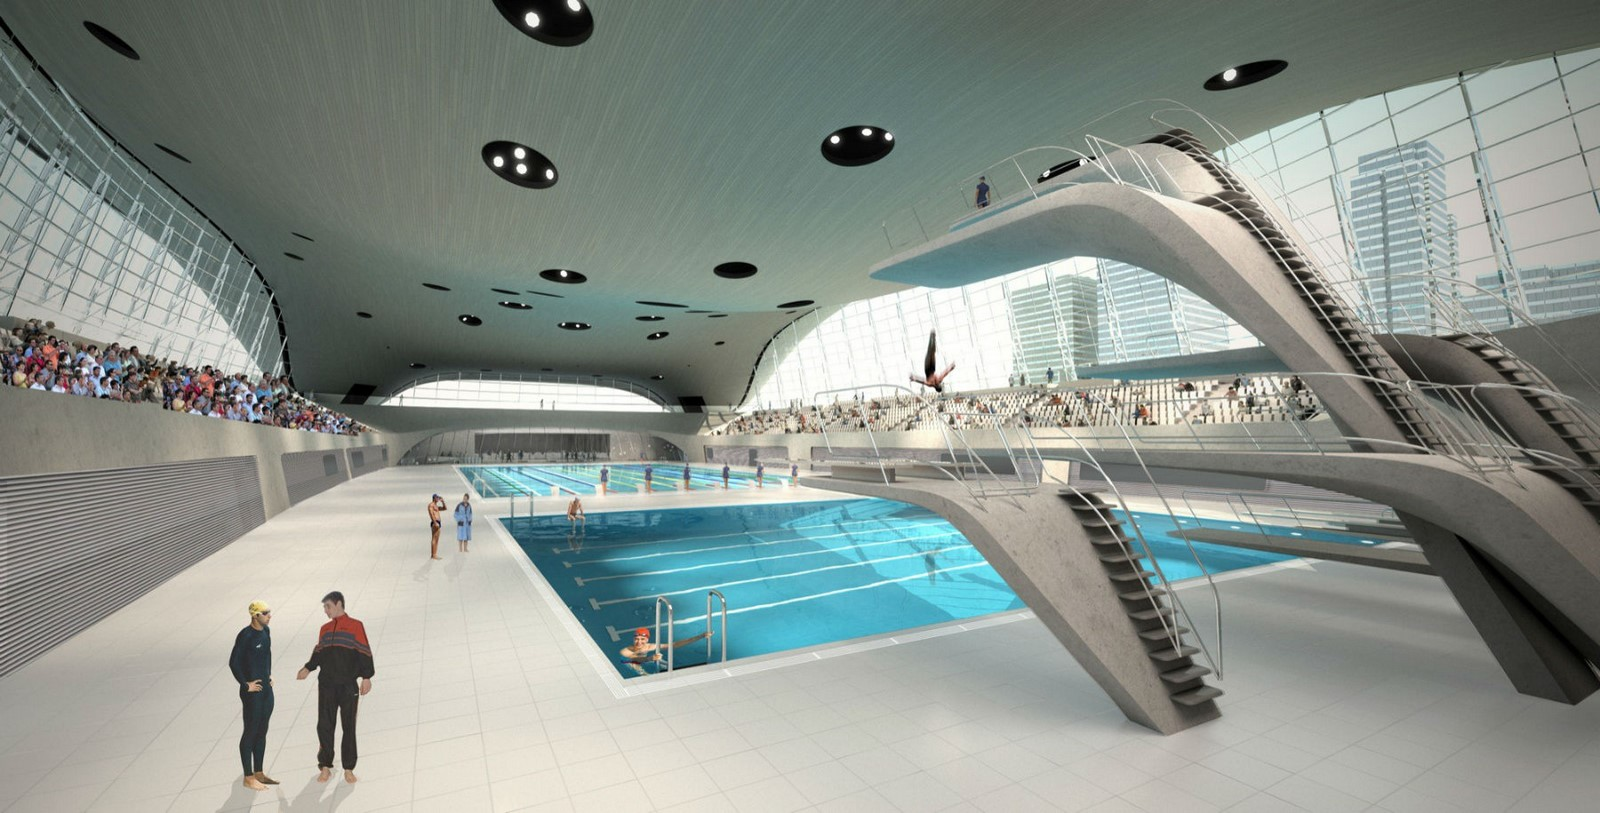 London Aquatics Centre by Zaha Hadid Architects- Architecture inspired by water - Sheet3